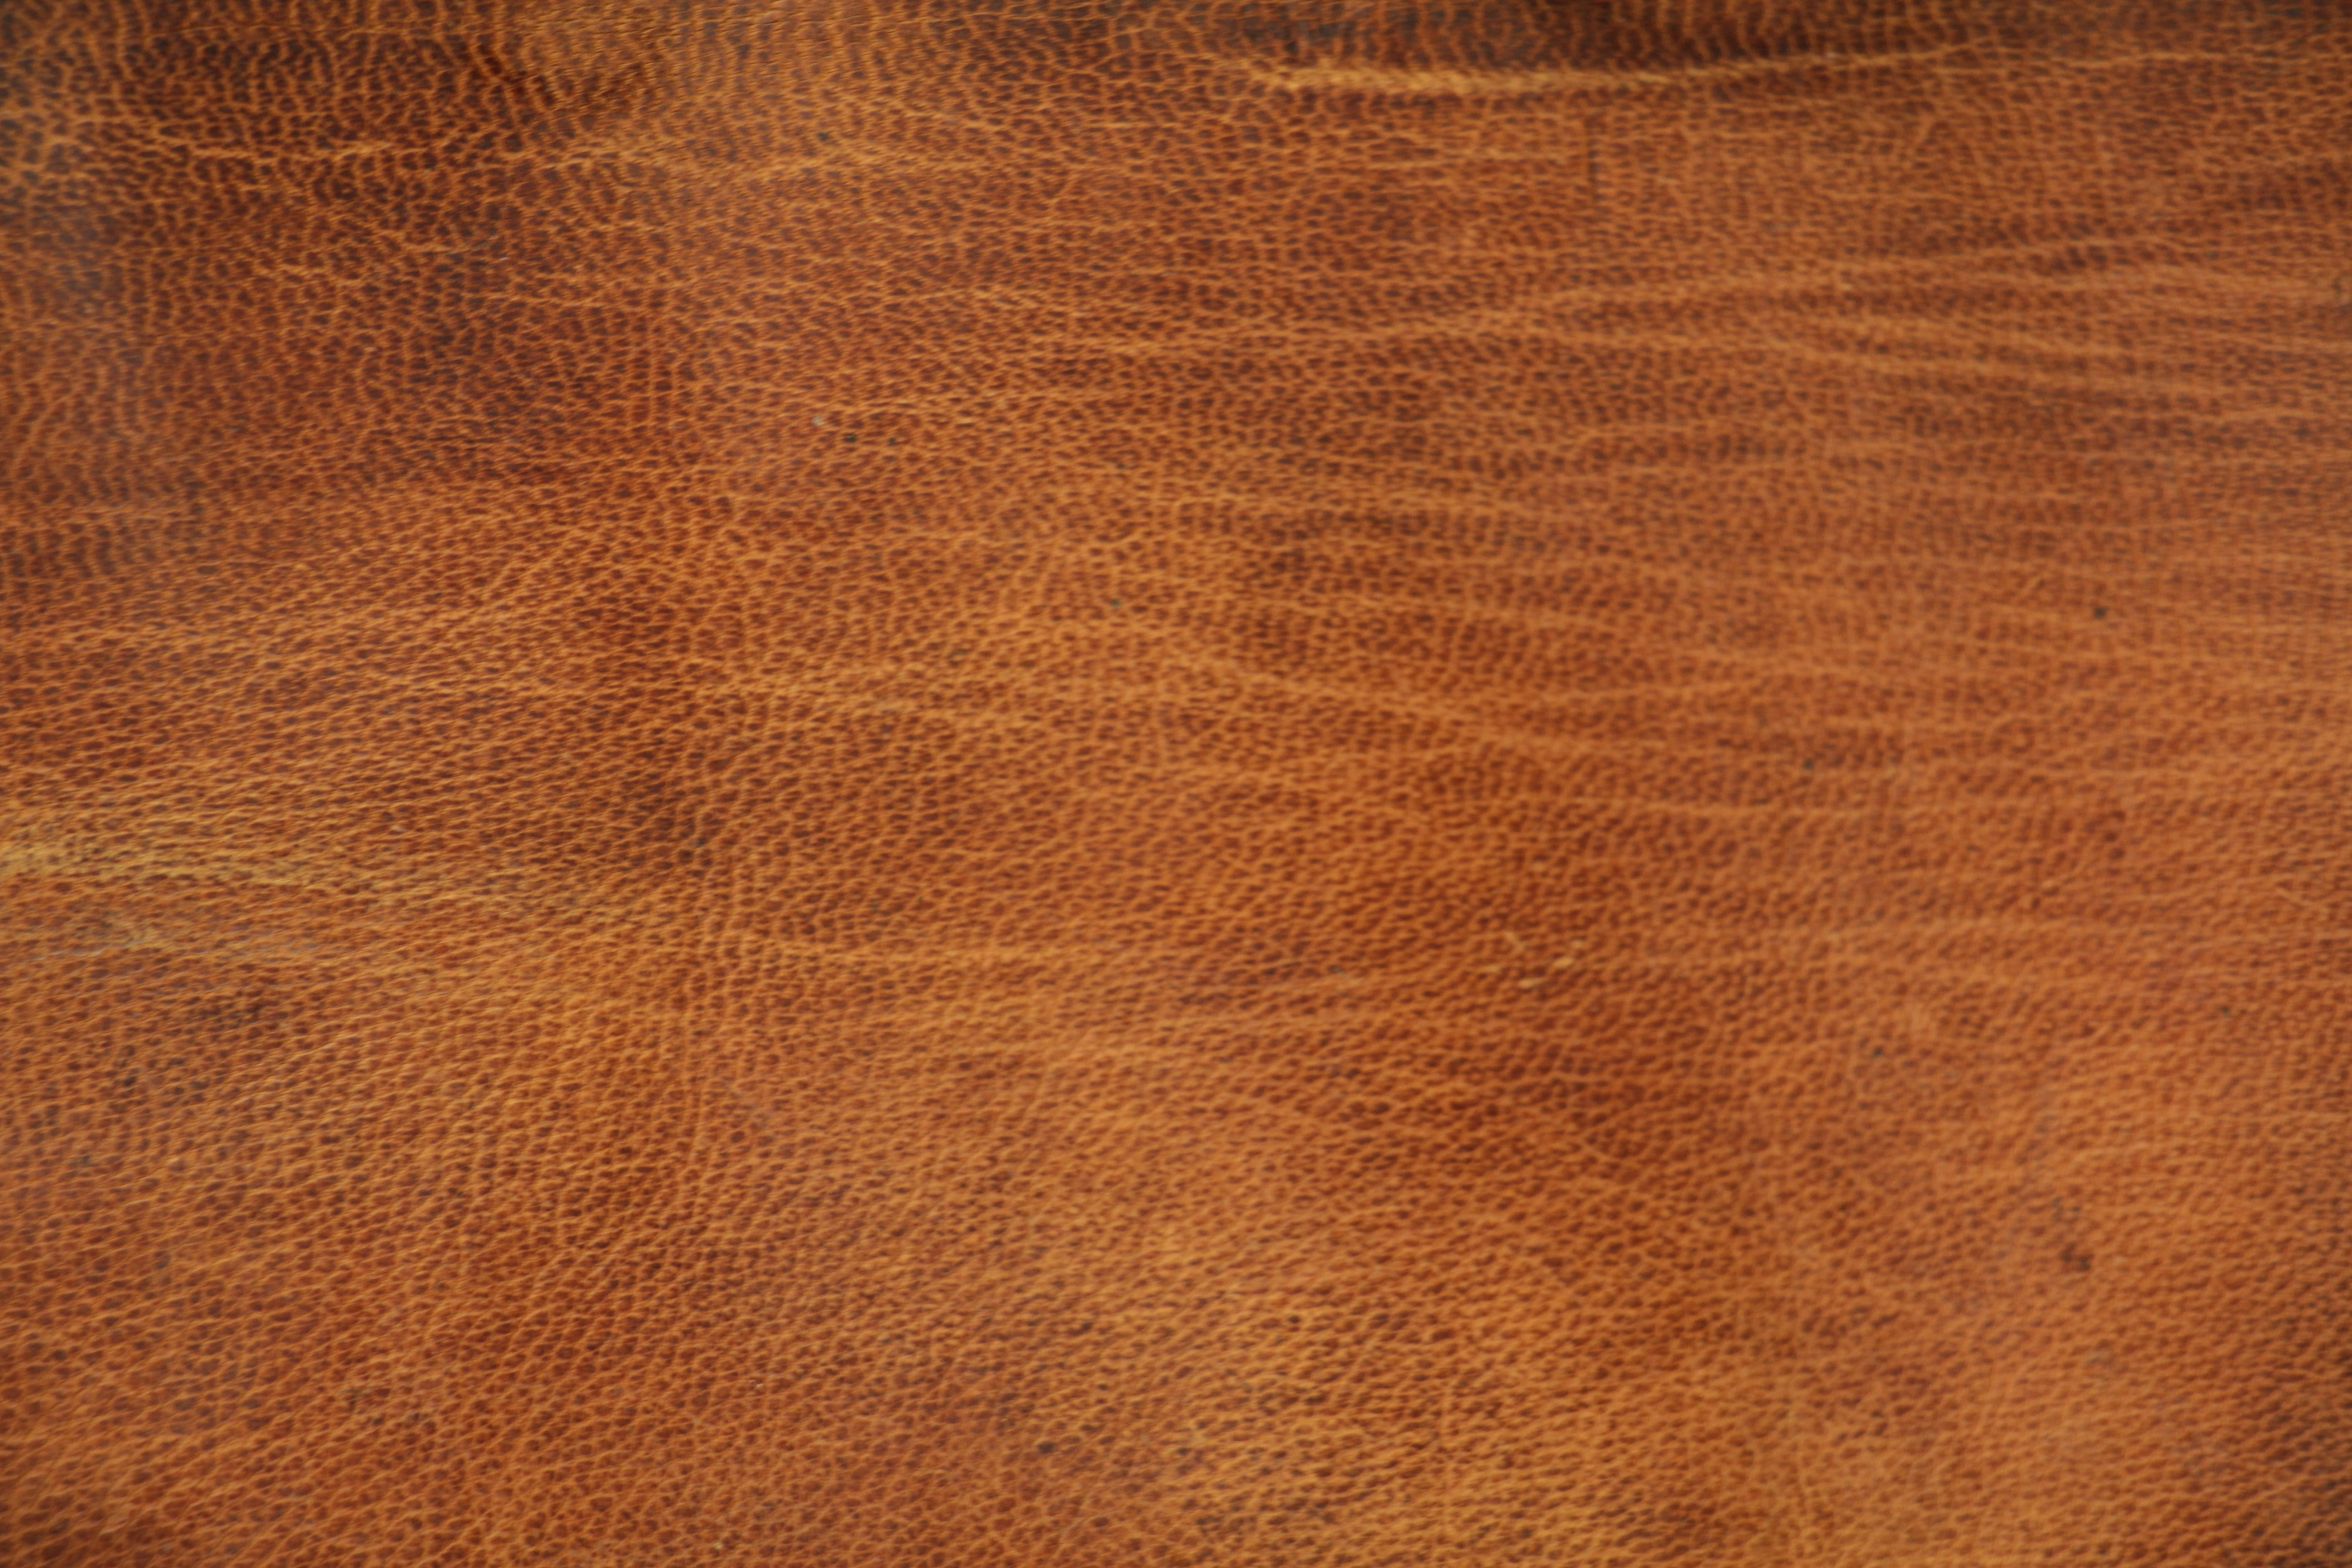 tan leather texture skin wrinkle material fabric background 4000x2667